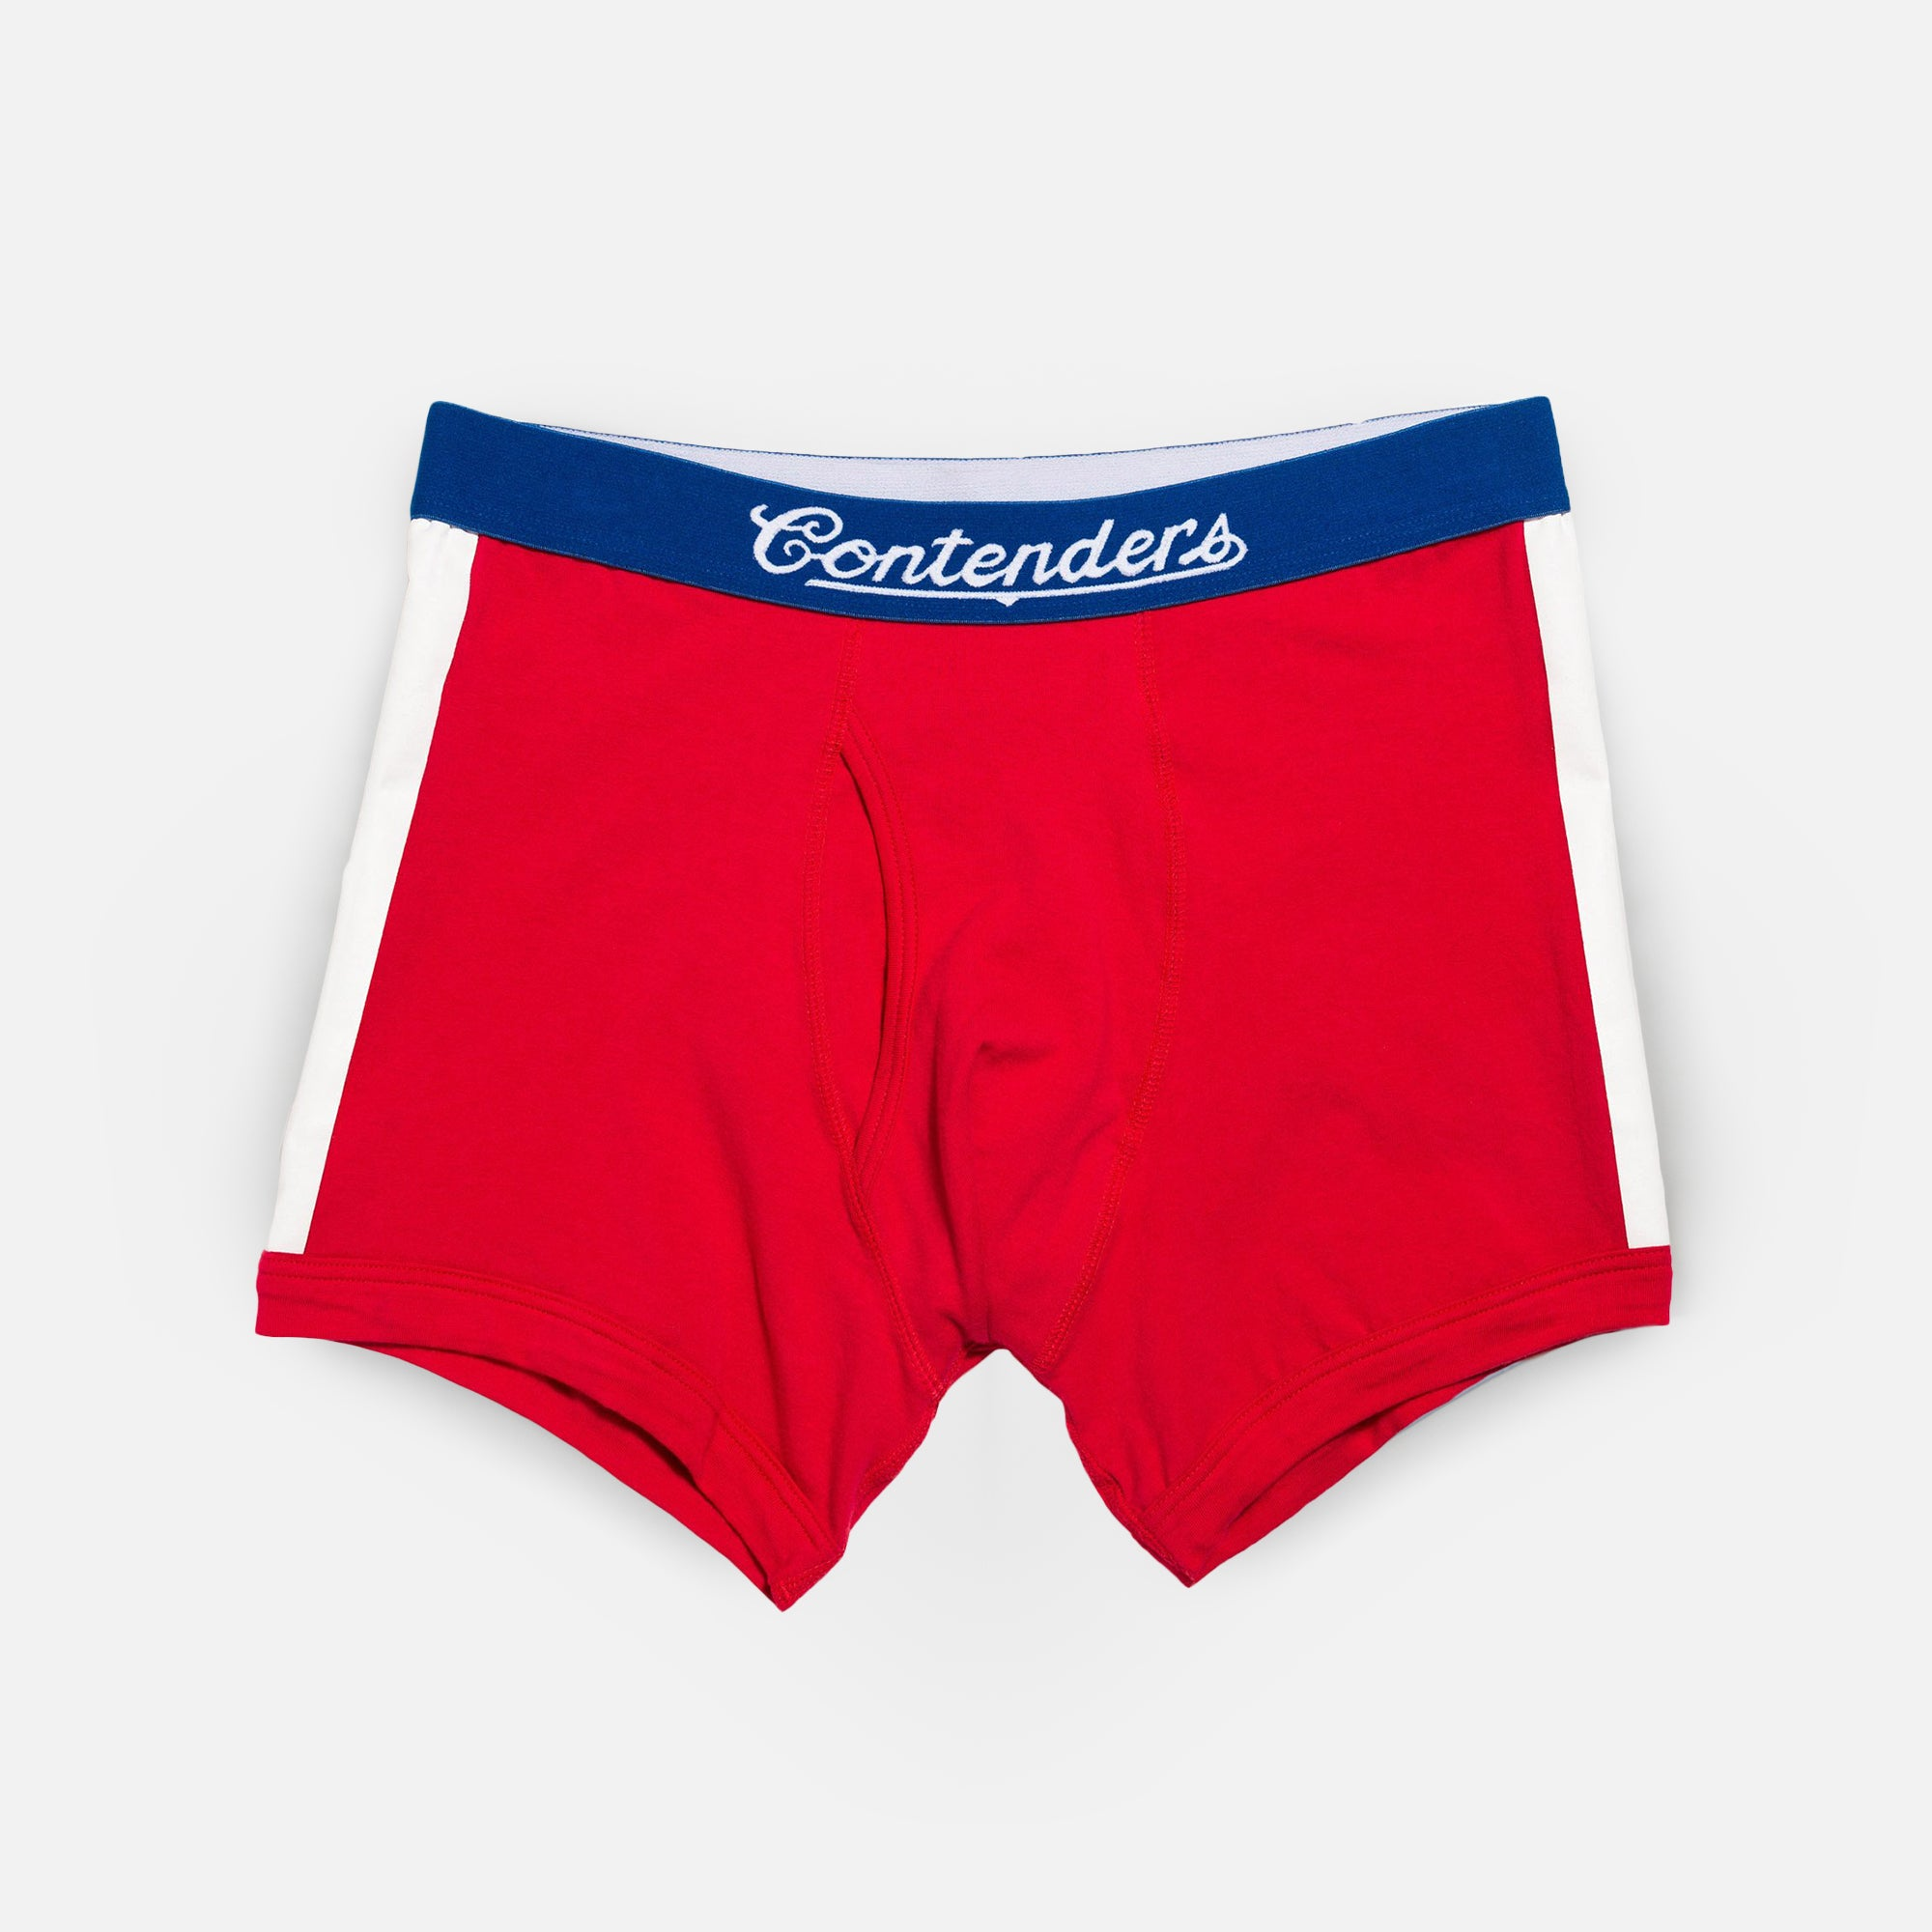 THE GEORGE BRIEF - Contenders Clothing